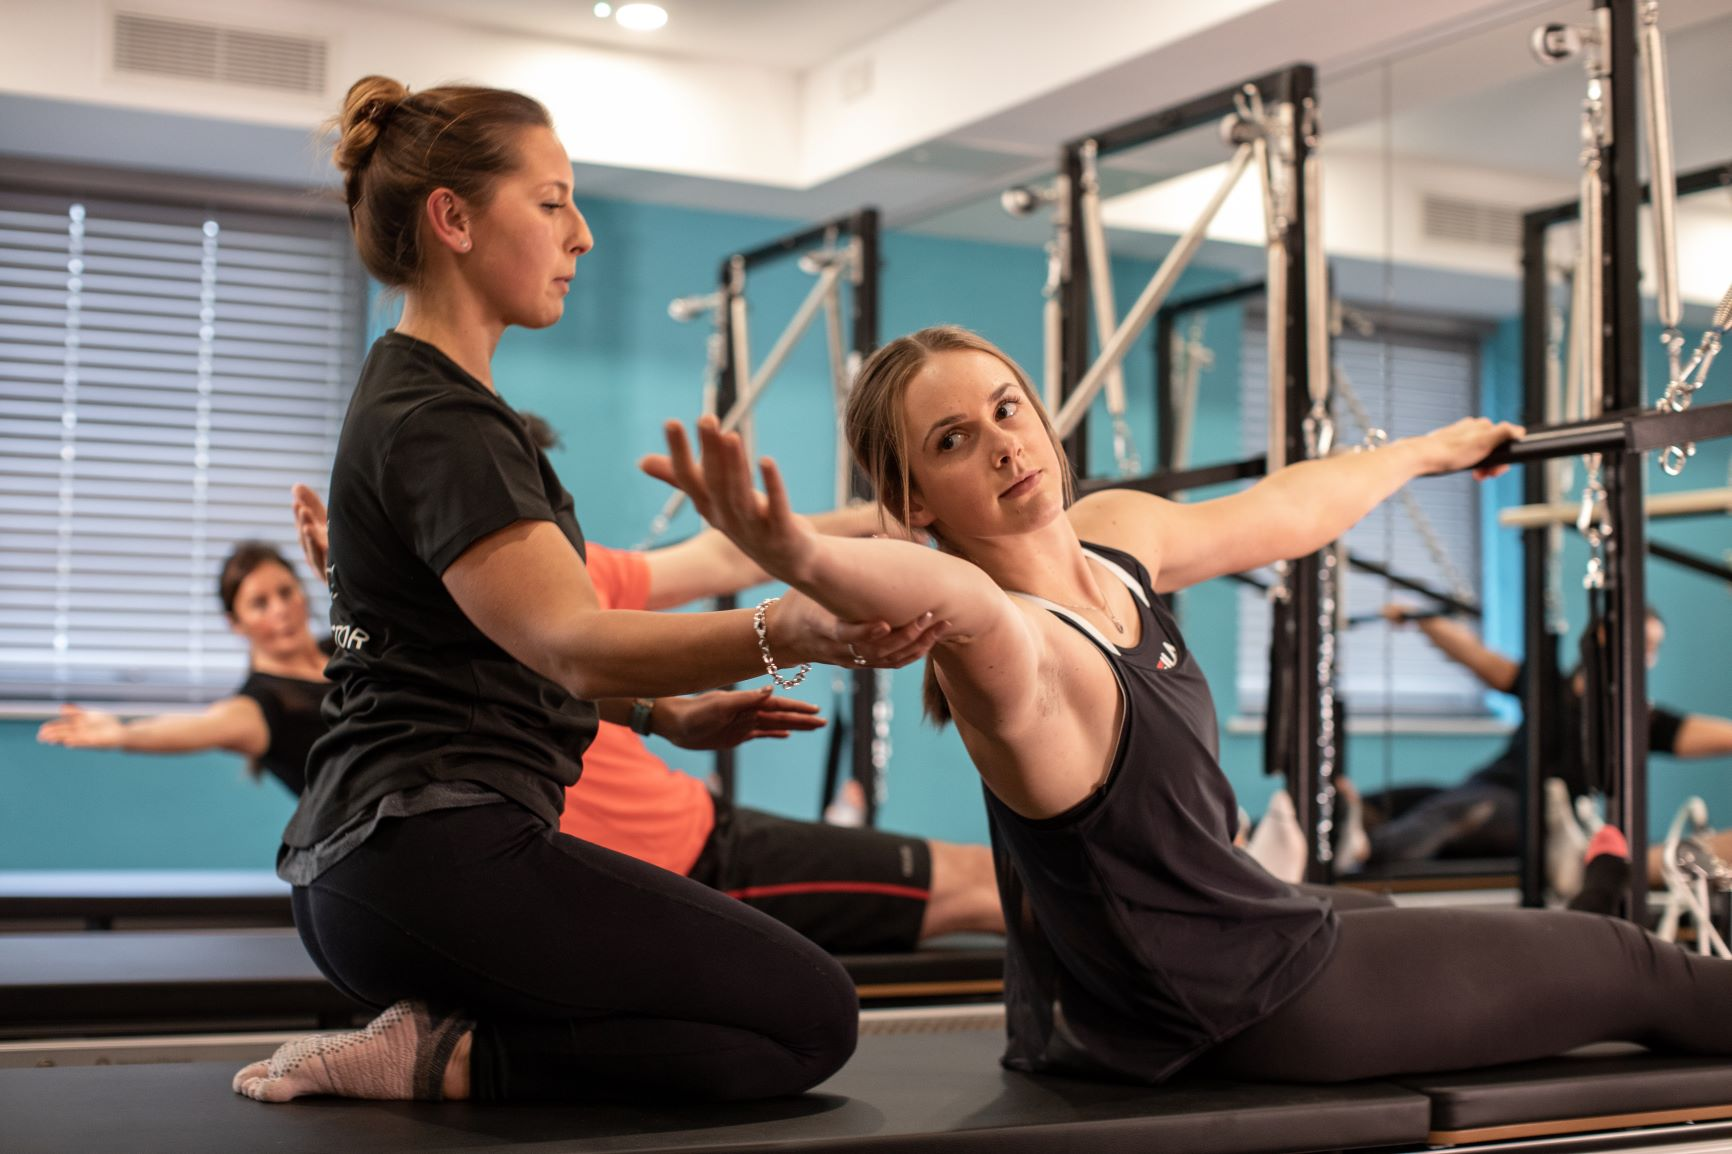 Physical Company provides complete equipment solution to new, high end Yoga and Pilates brand